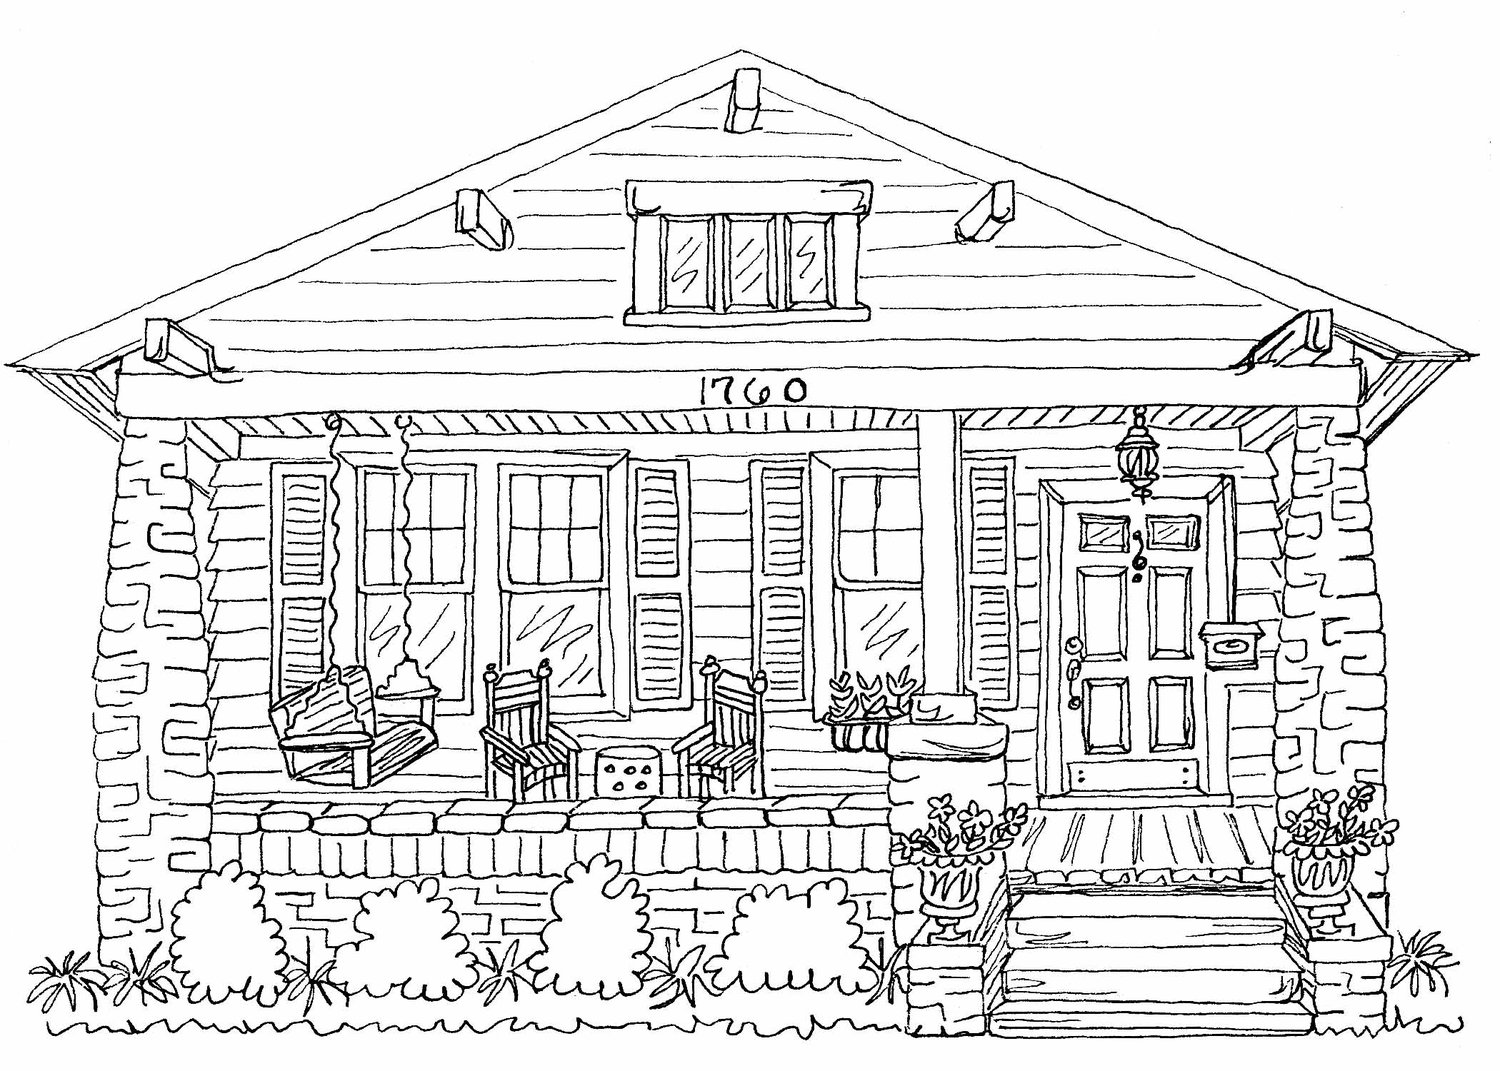 Ls Home home sweet homes — southern whit art + designs